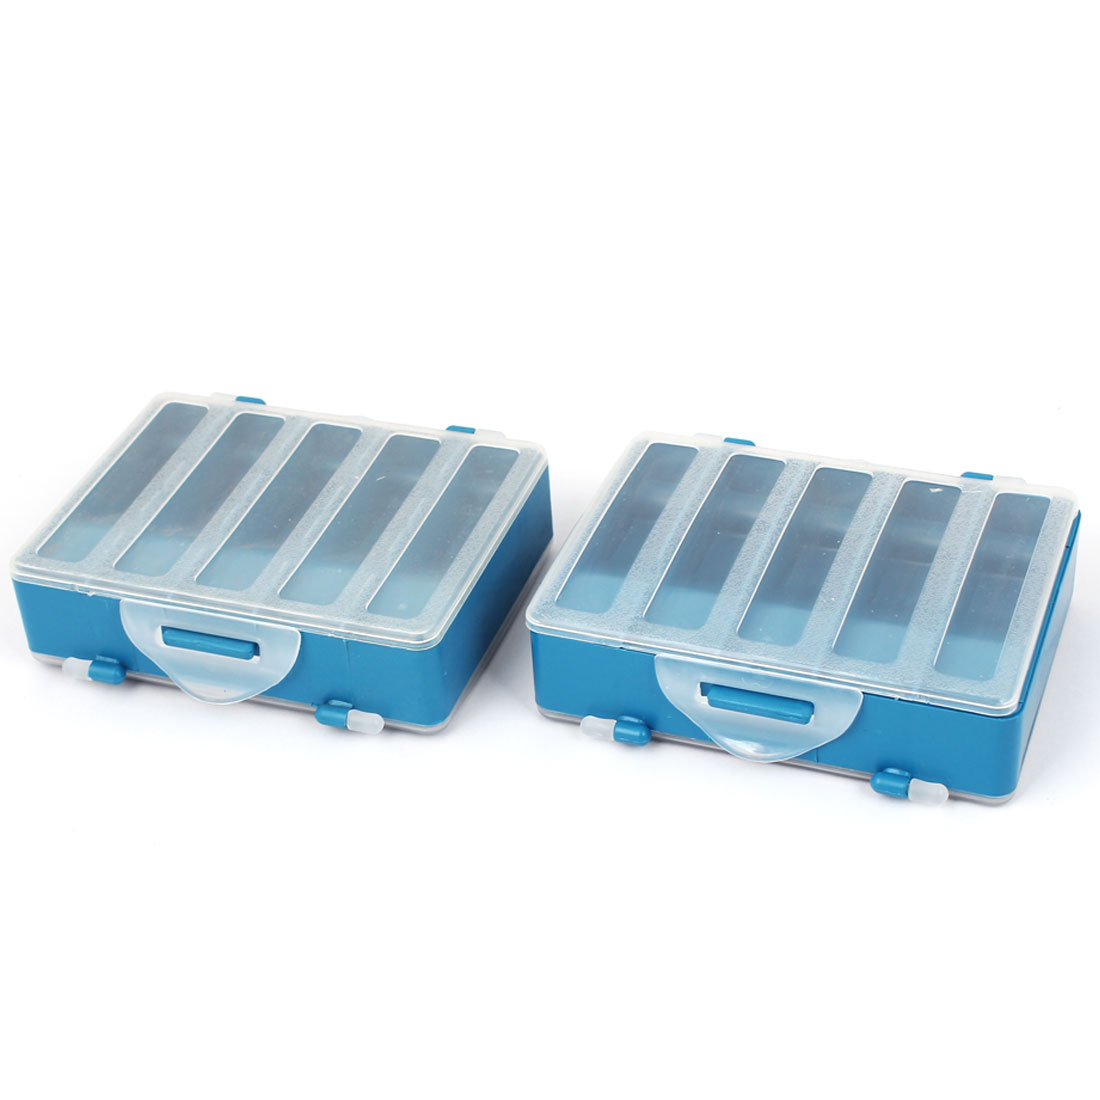 Plastic Two Sided 10-Compartment Fishing Tackle Storage Case Box 2 Pcs